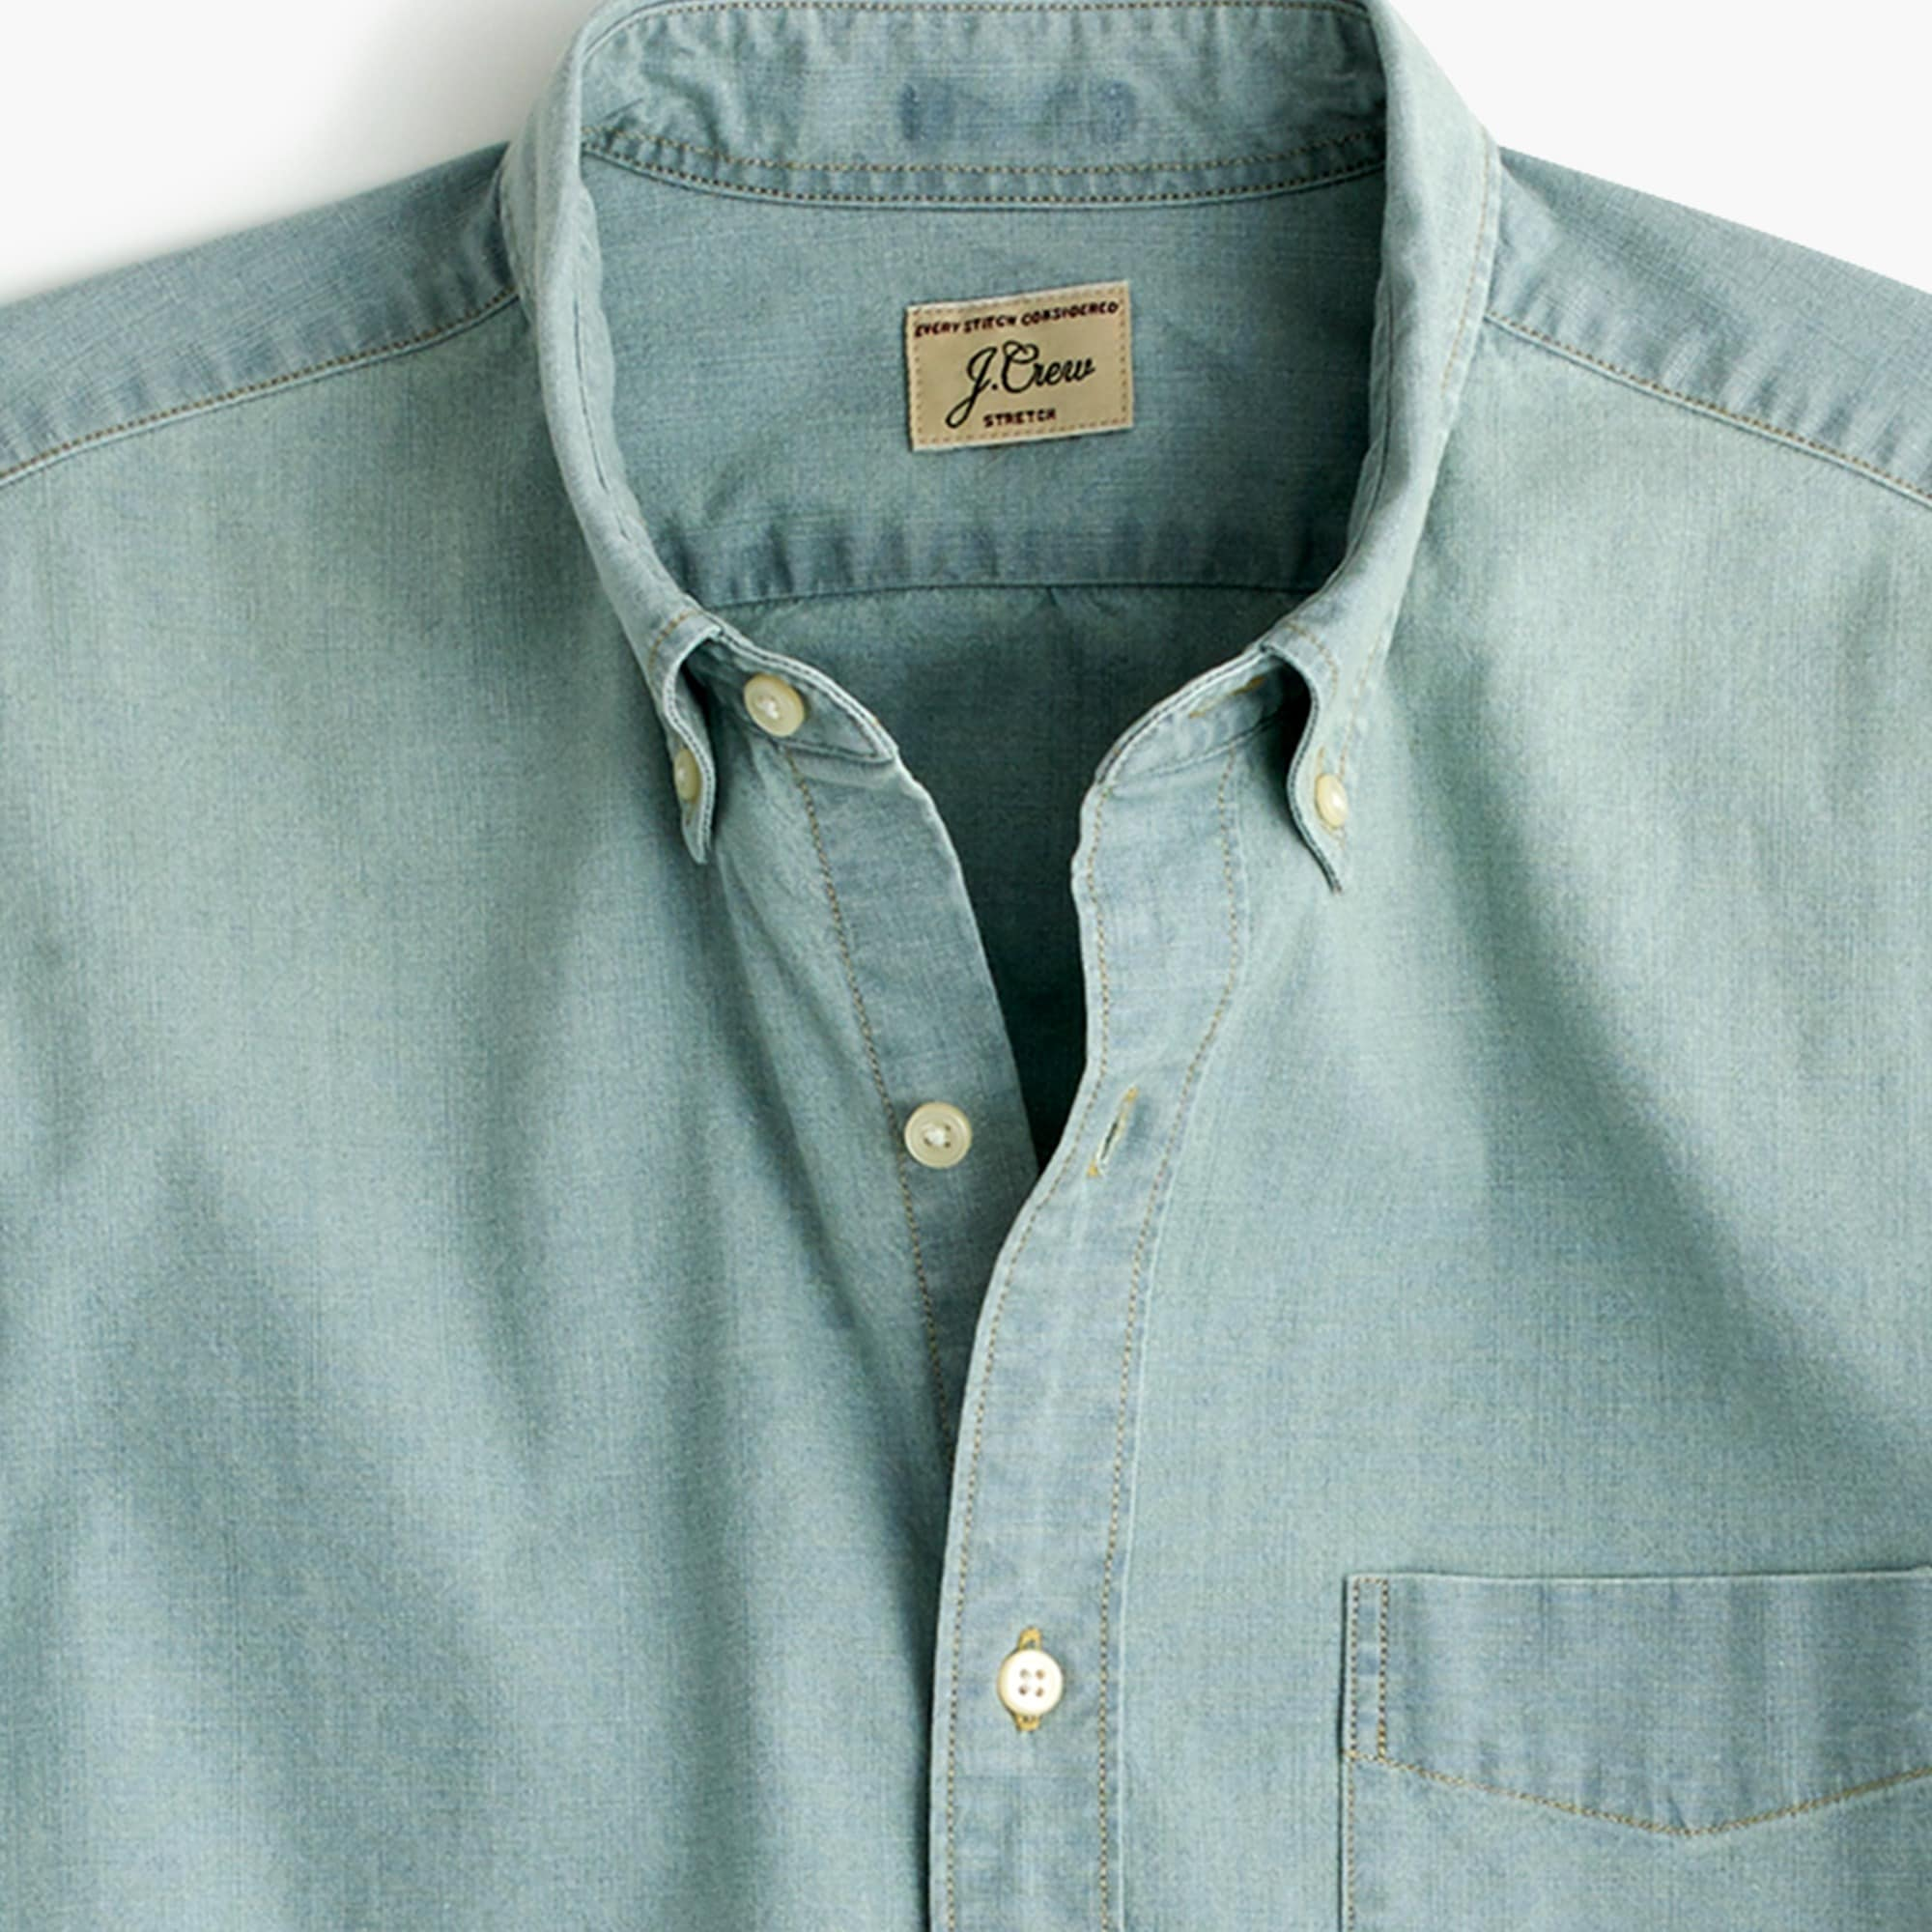 Tall stretch short-sleeve shirt in light wash chambray